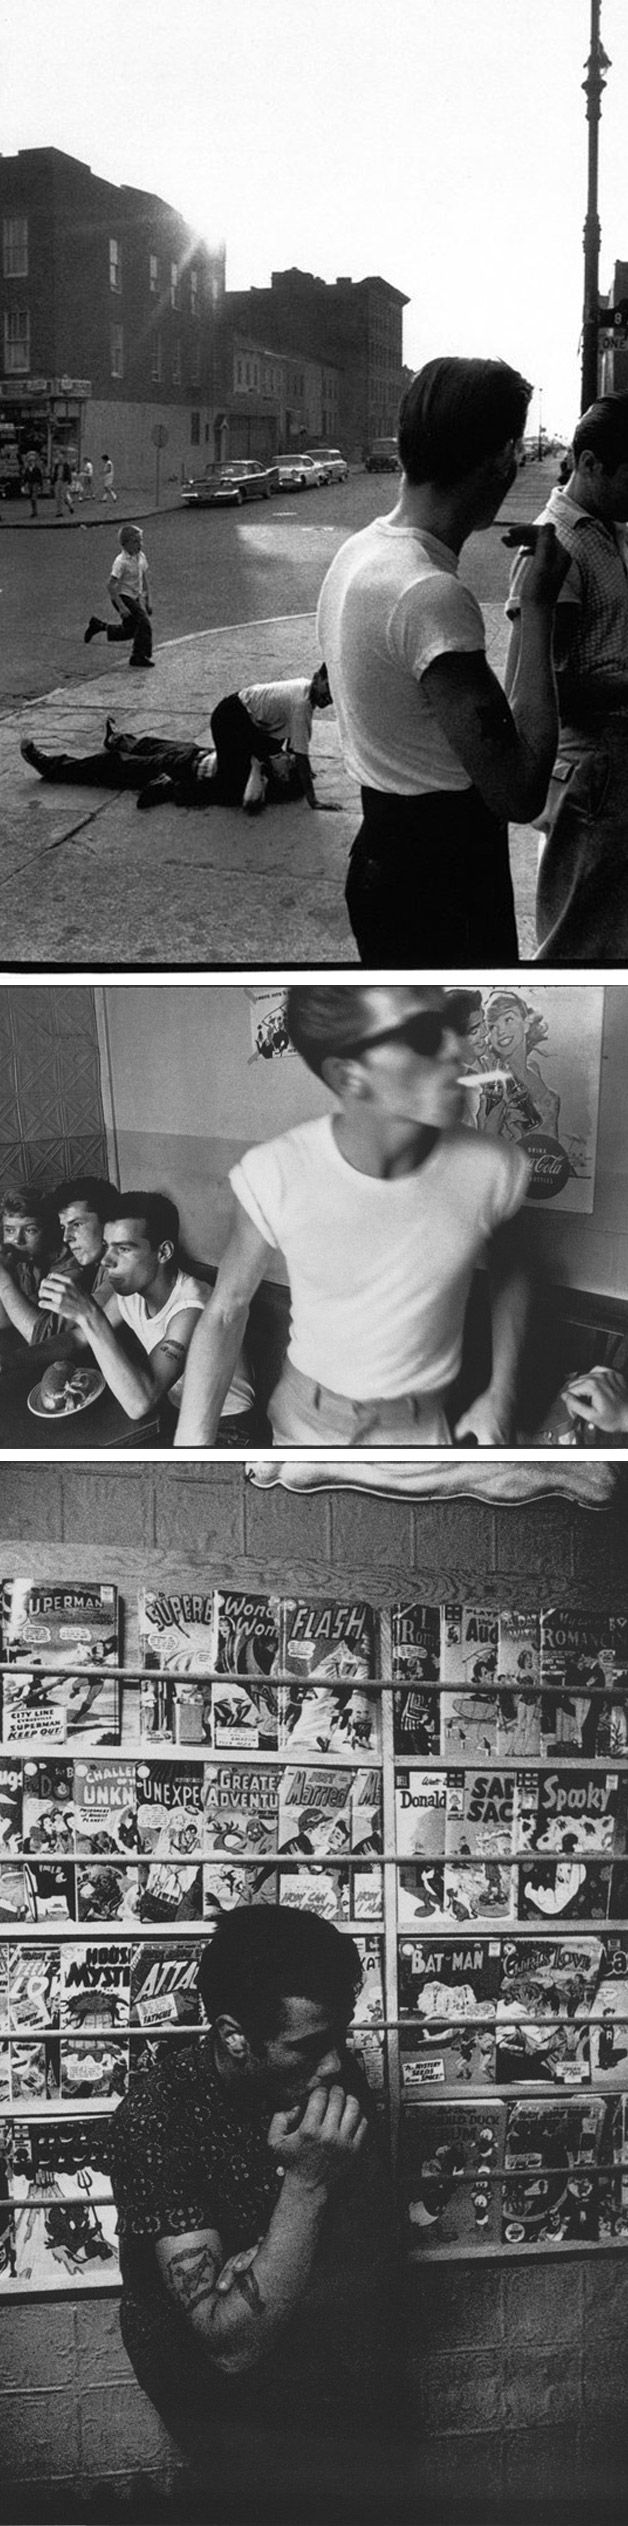 Jokers - 50's gang of NY - Photo by Bruce Davidson